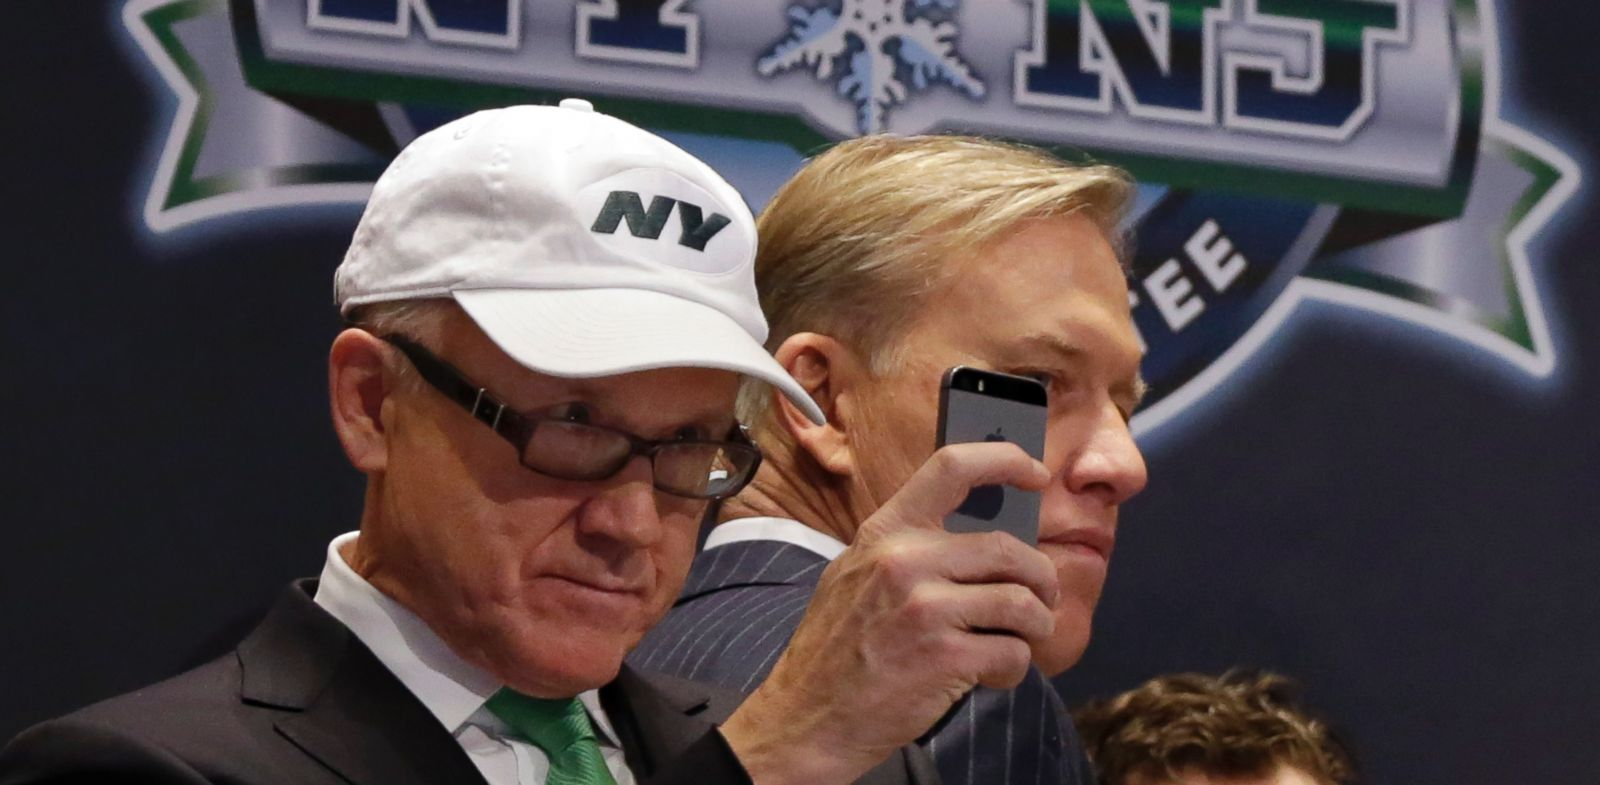 PHOTO: New York Jets owner Woody Johnson, left, uses his mobile phone